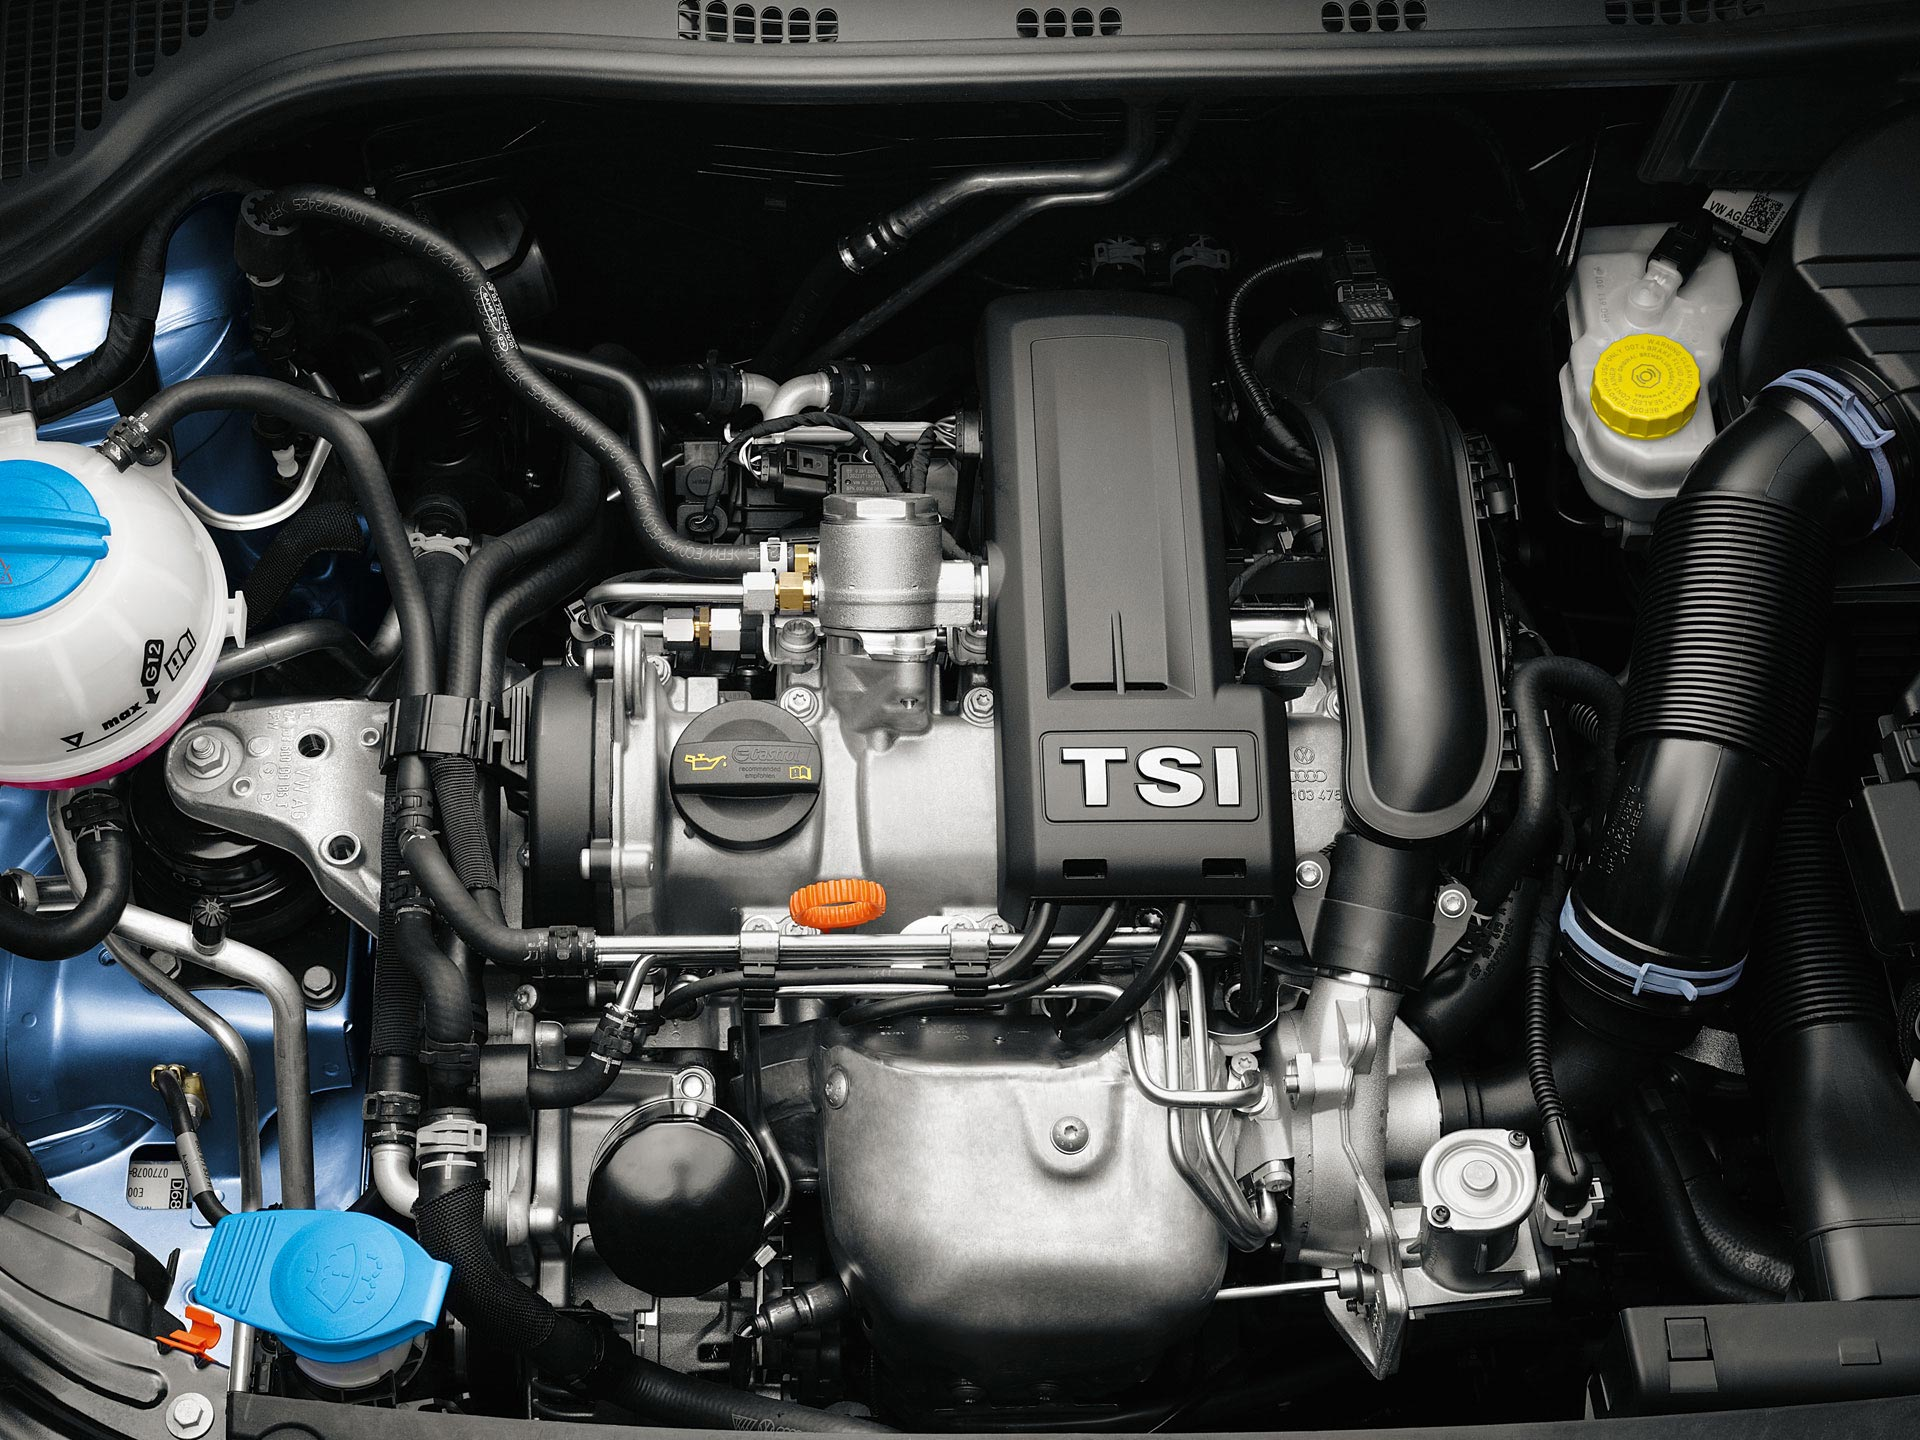 Vw Tsi Meaning >> Volkswagen TSI Engines Explained - autoevolution